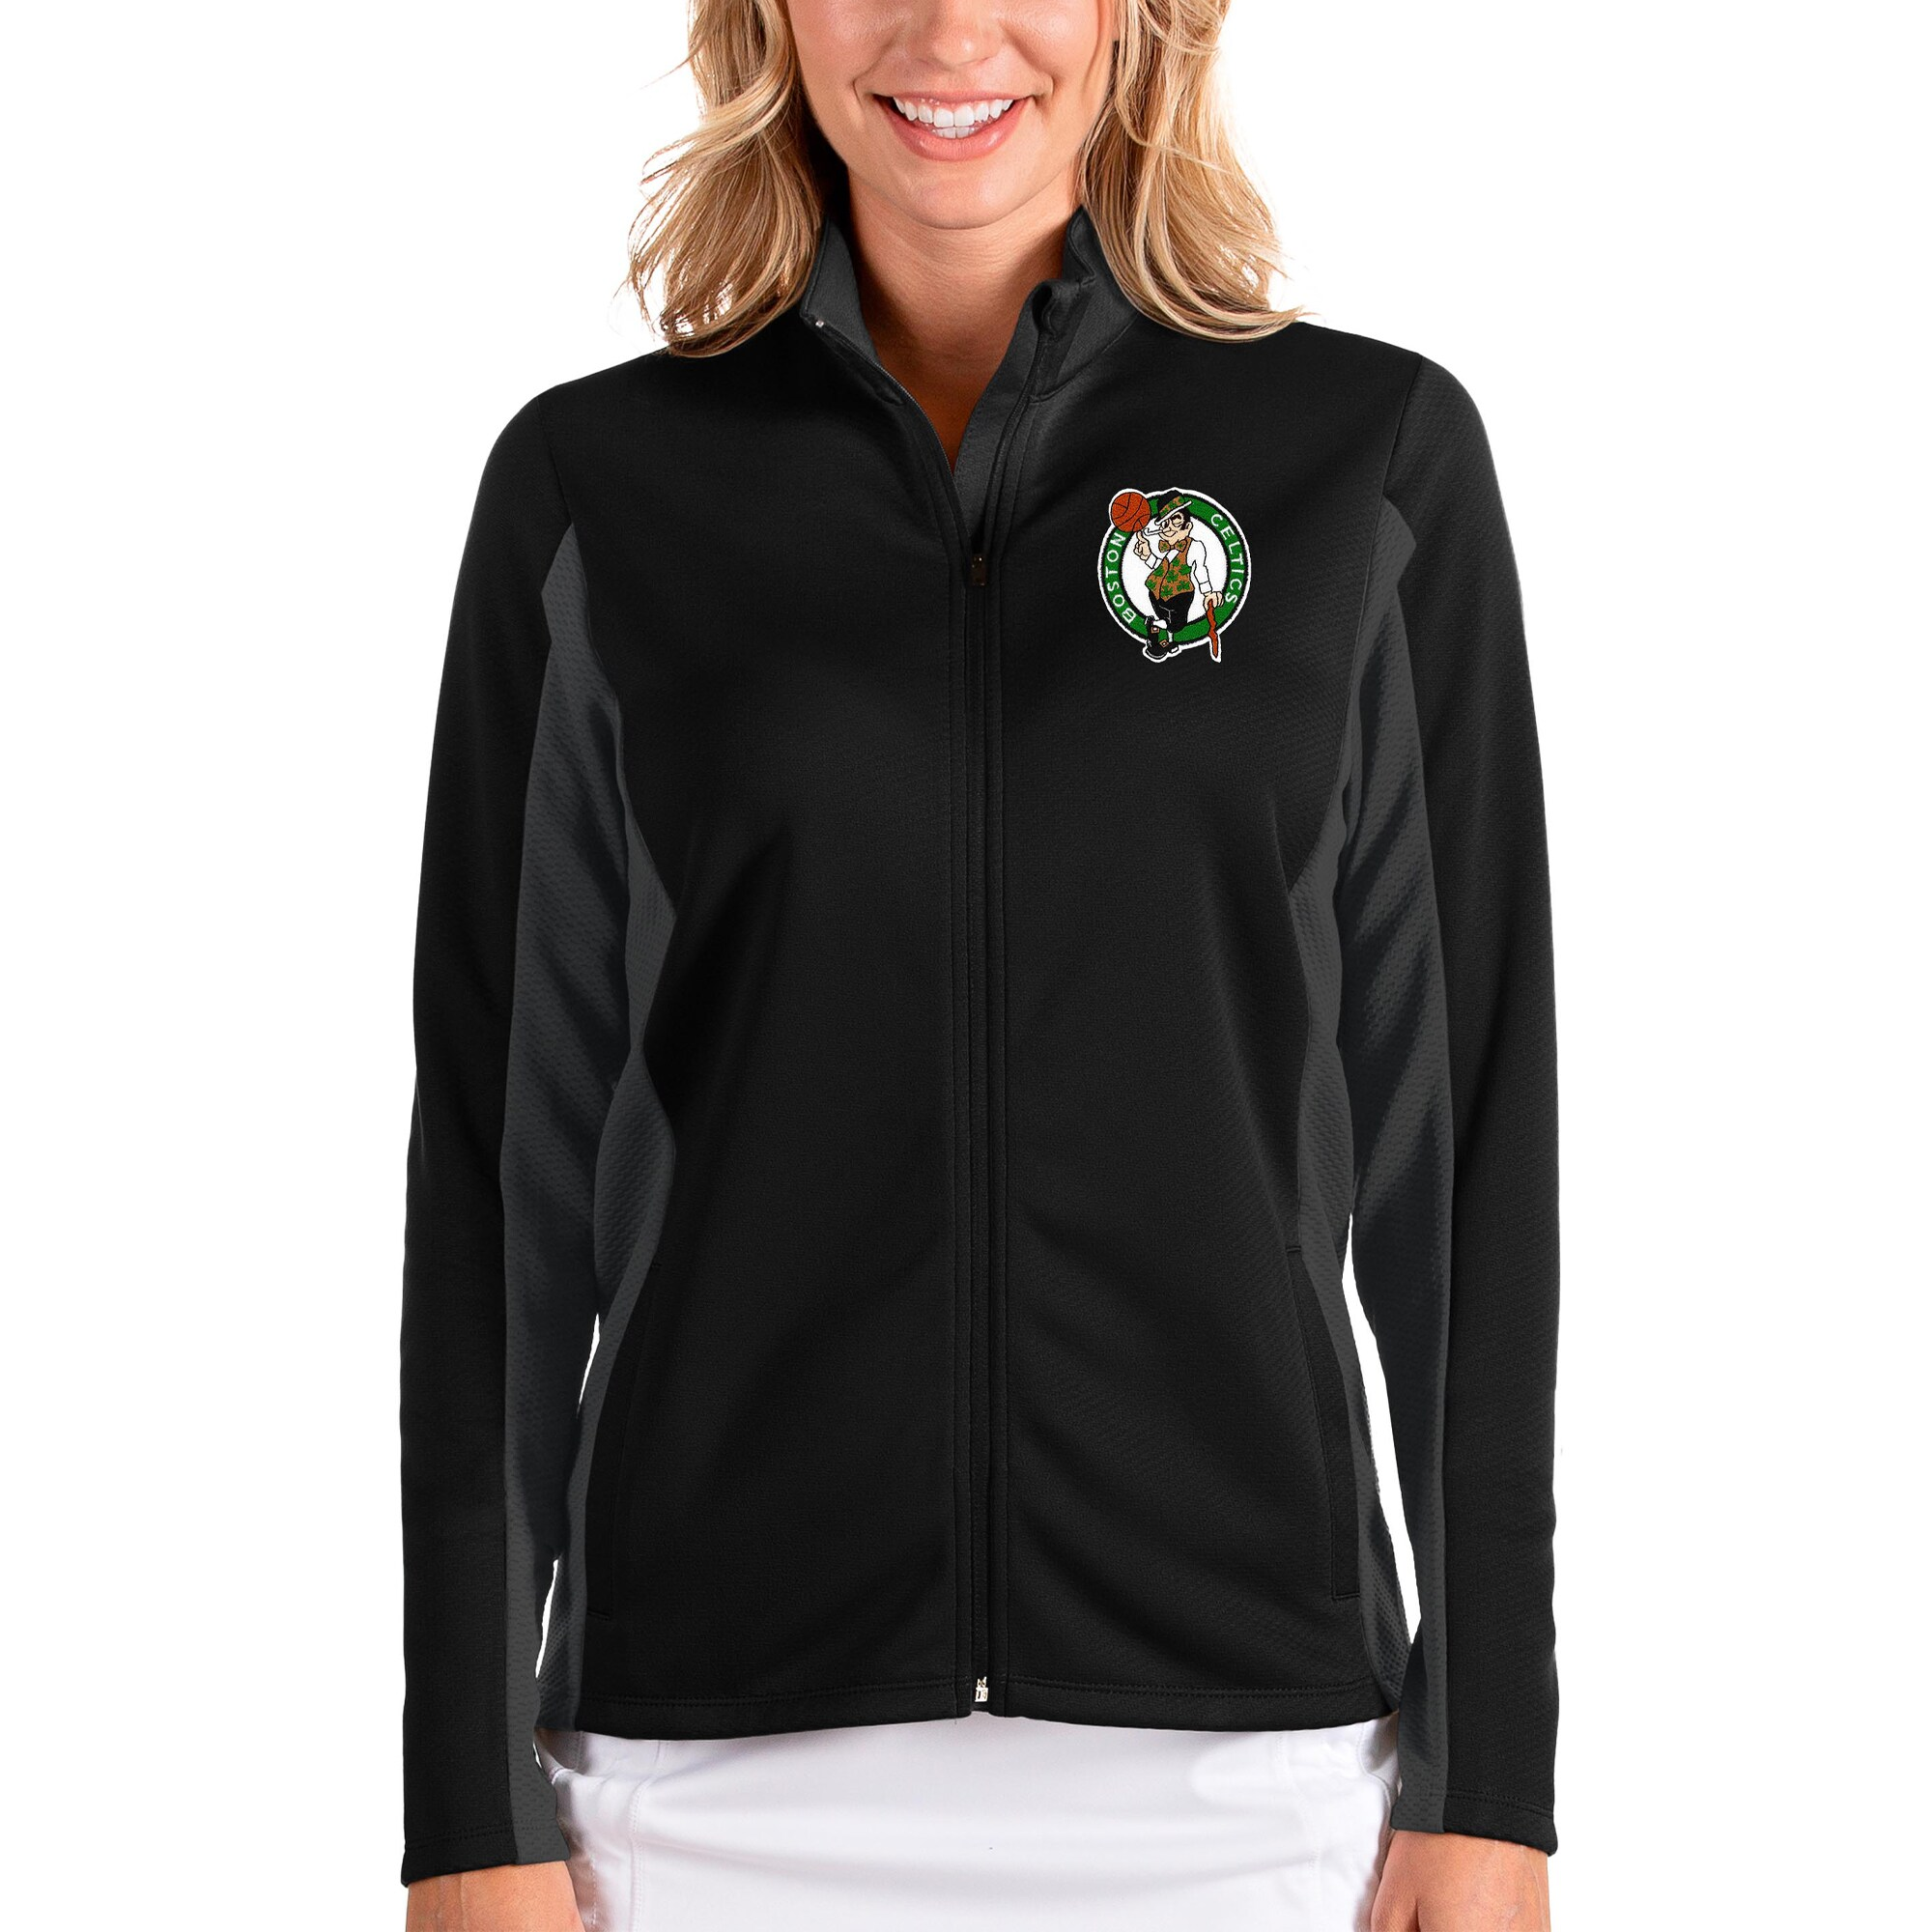 Boston Celtics Antigua Women's Passage Full-Zip Jacket - Black/Charcoal